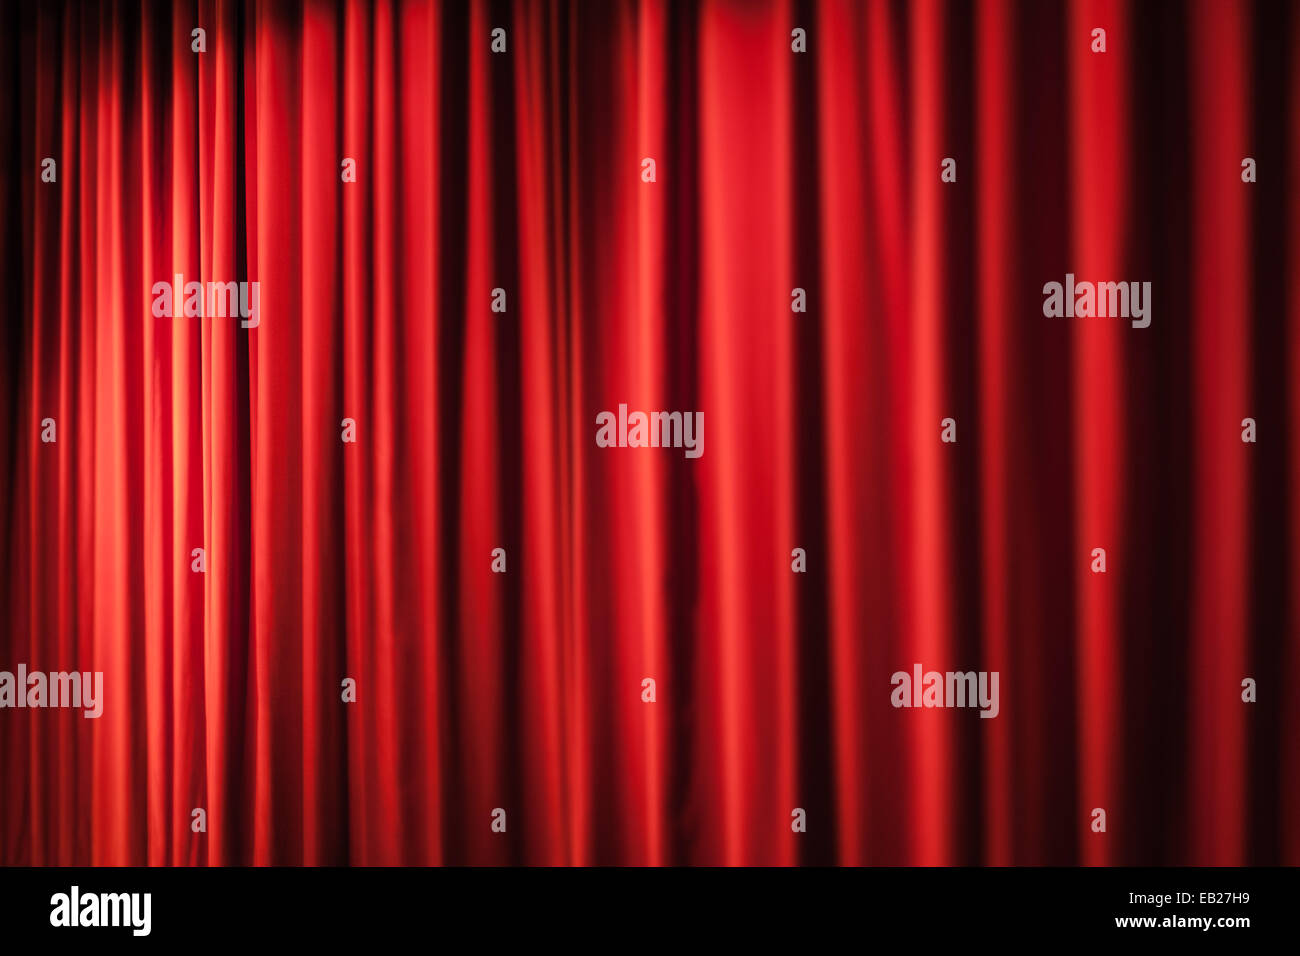 Closed theater curtains - Stock Photo A Closed Red Stage Curtain In A Small Theater